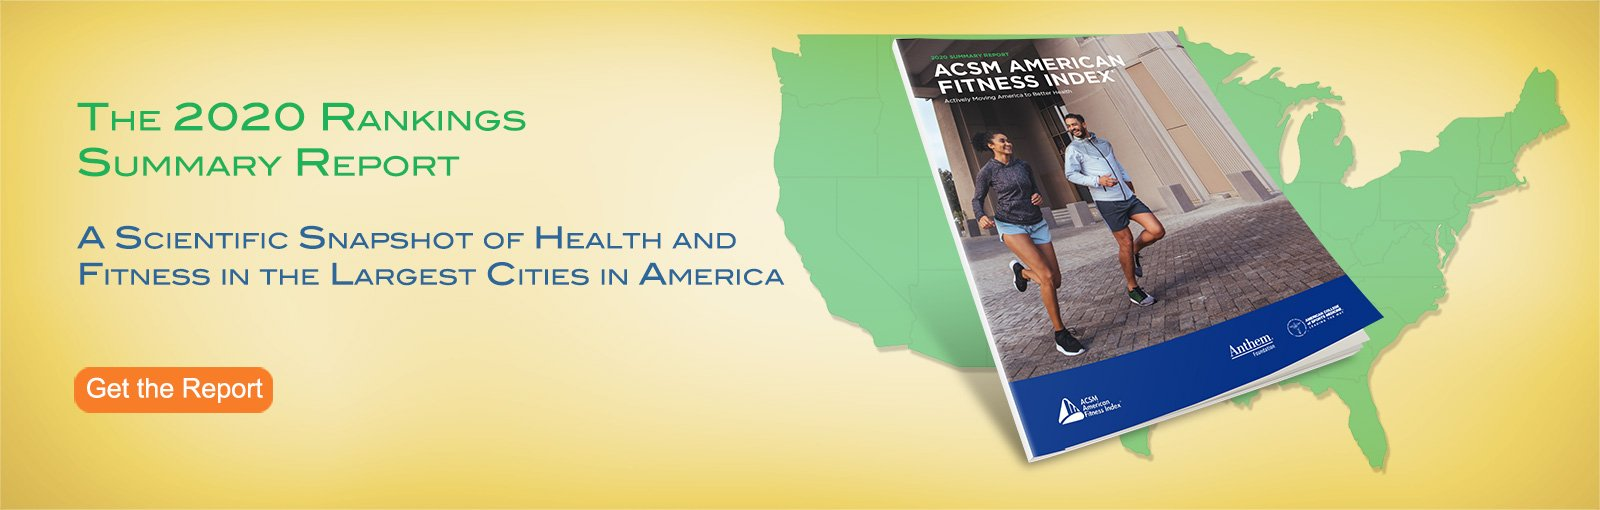 acsm-american-fitness-index-2020-rankings-summary-reportl